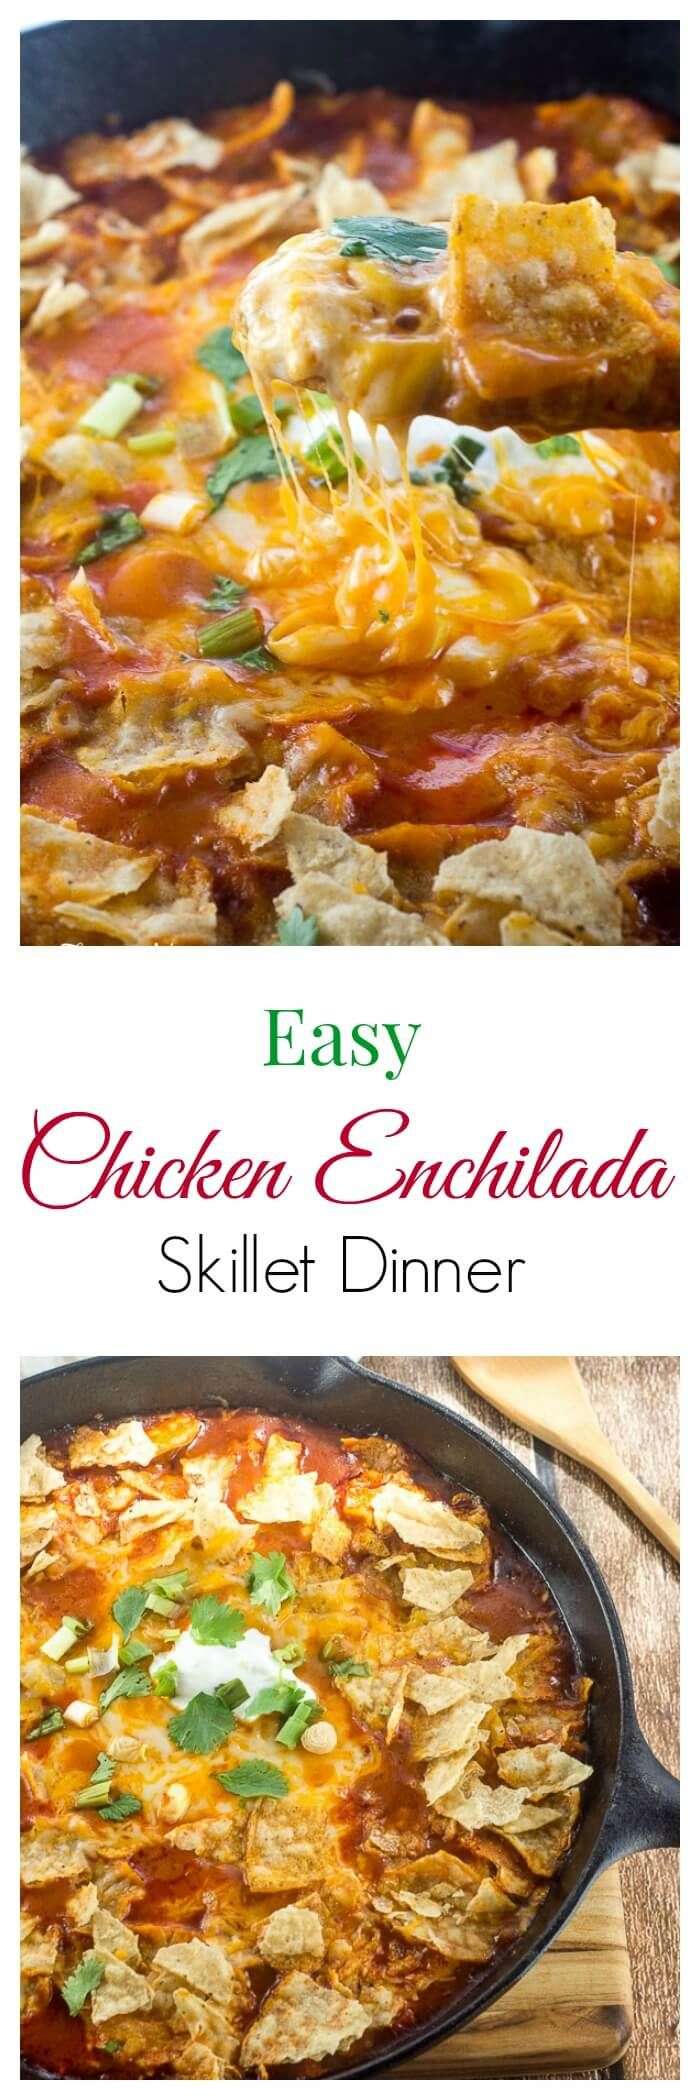 This Easy Chicken Enchilada Skillet Dinner makes a delicious hot and cheesy weeknight meal that can be on the table in under 30 minutes. ~ http://FlavorMosaic.com